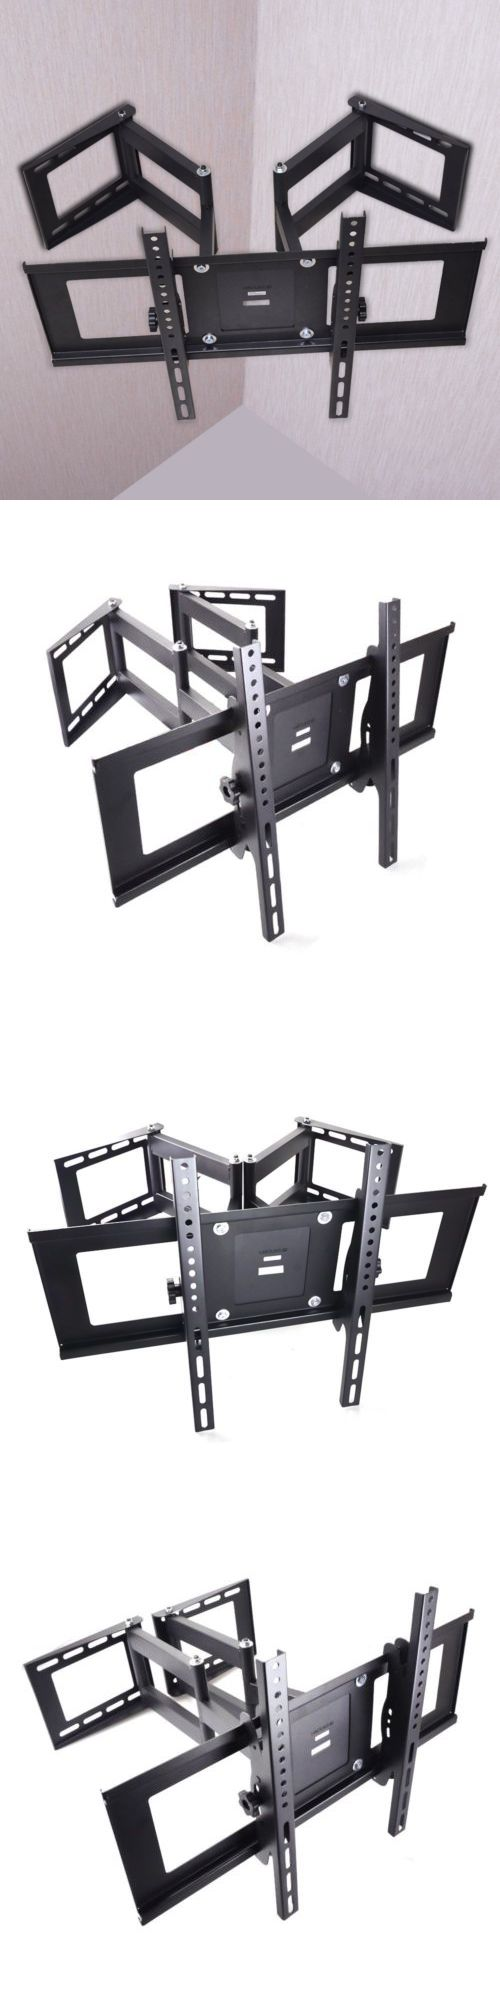 TV Mounts and Brackets: Corner Tiltandswivel Tv Wall Mount Bracket For 26-70 Samsung Lg Vizio Led Lcd -> BUY IT NOW ONLY: $37.99 on eBay!